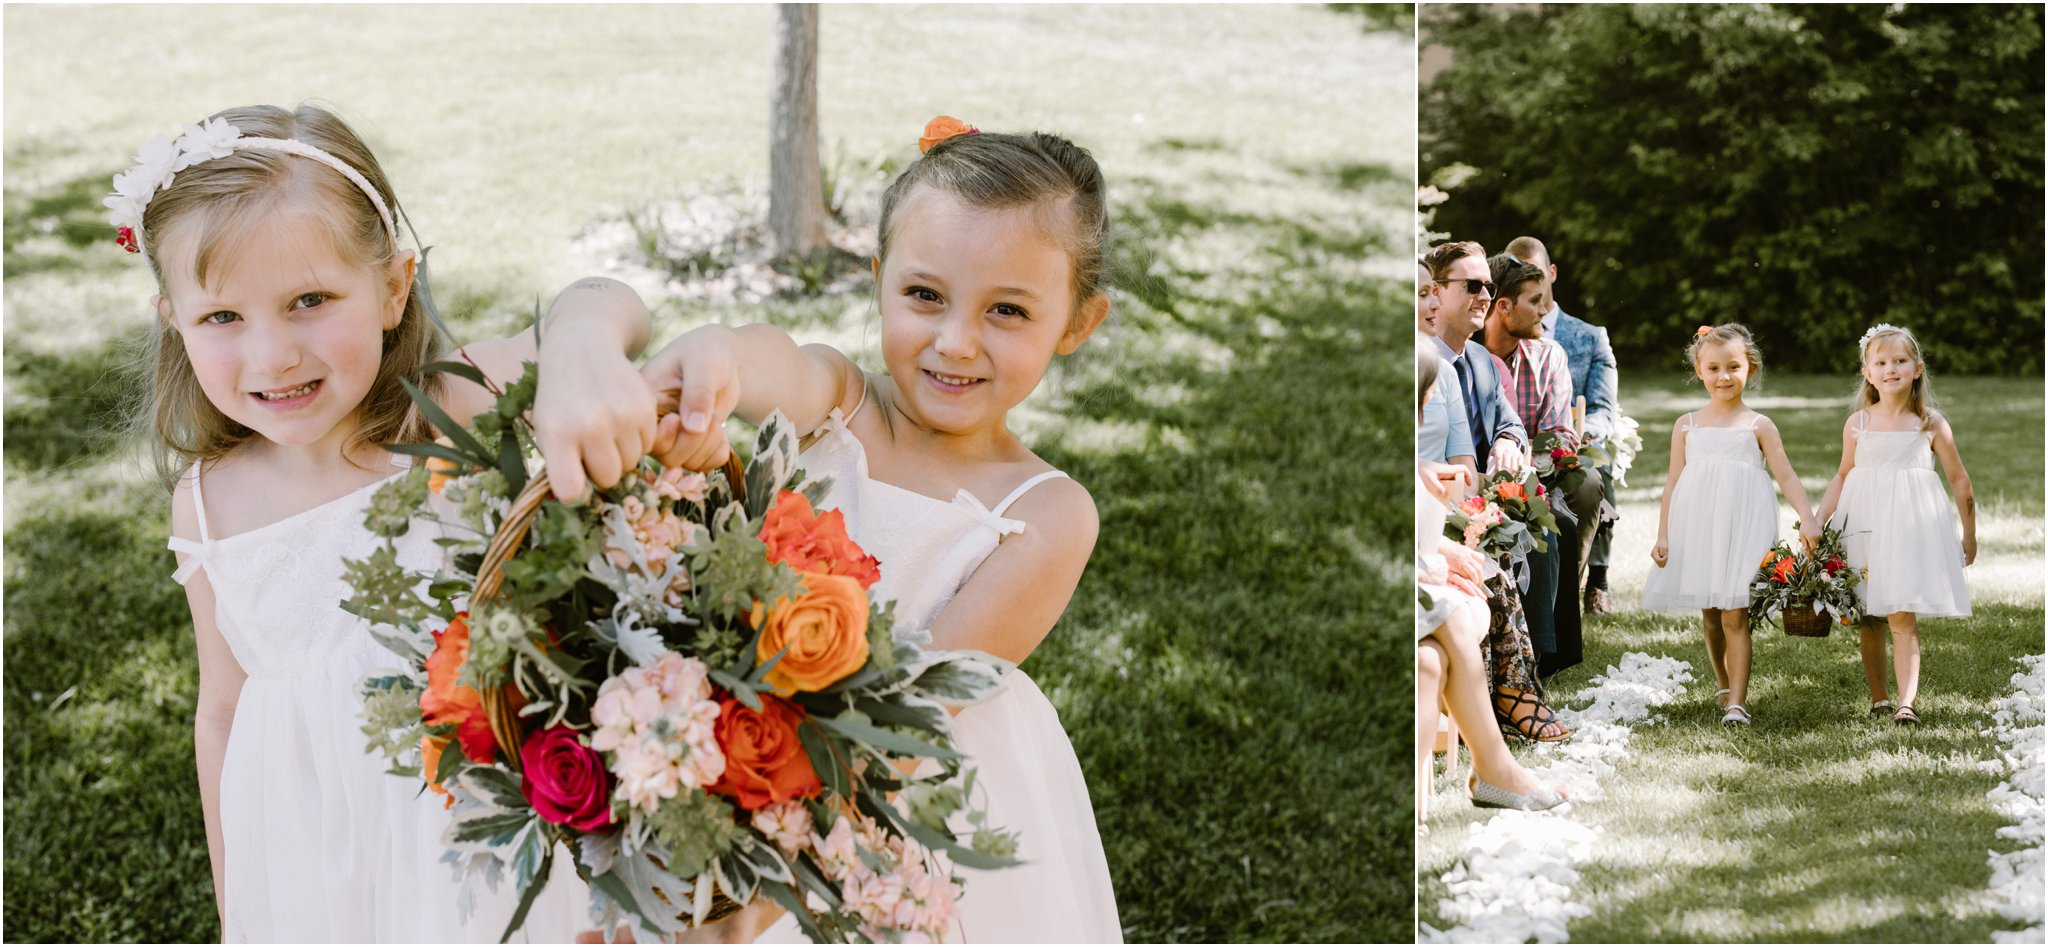 0260Los Poblanos Weddings Blue Rose Photography Studios